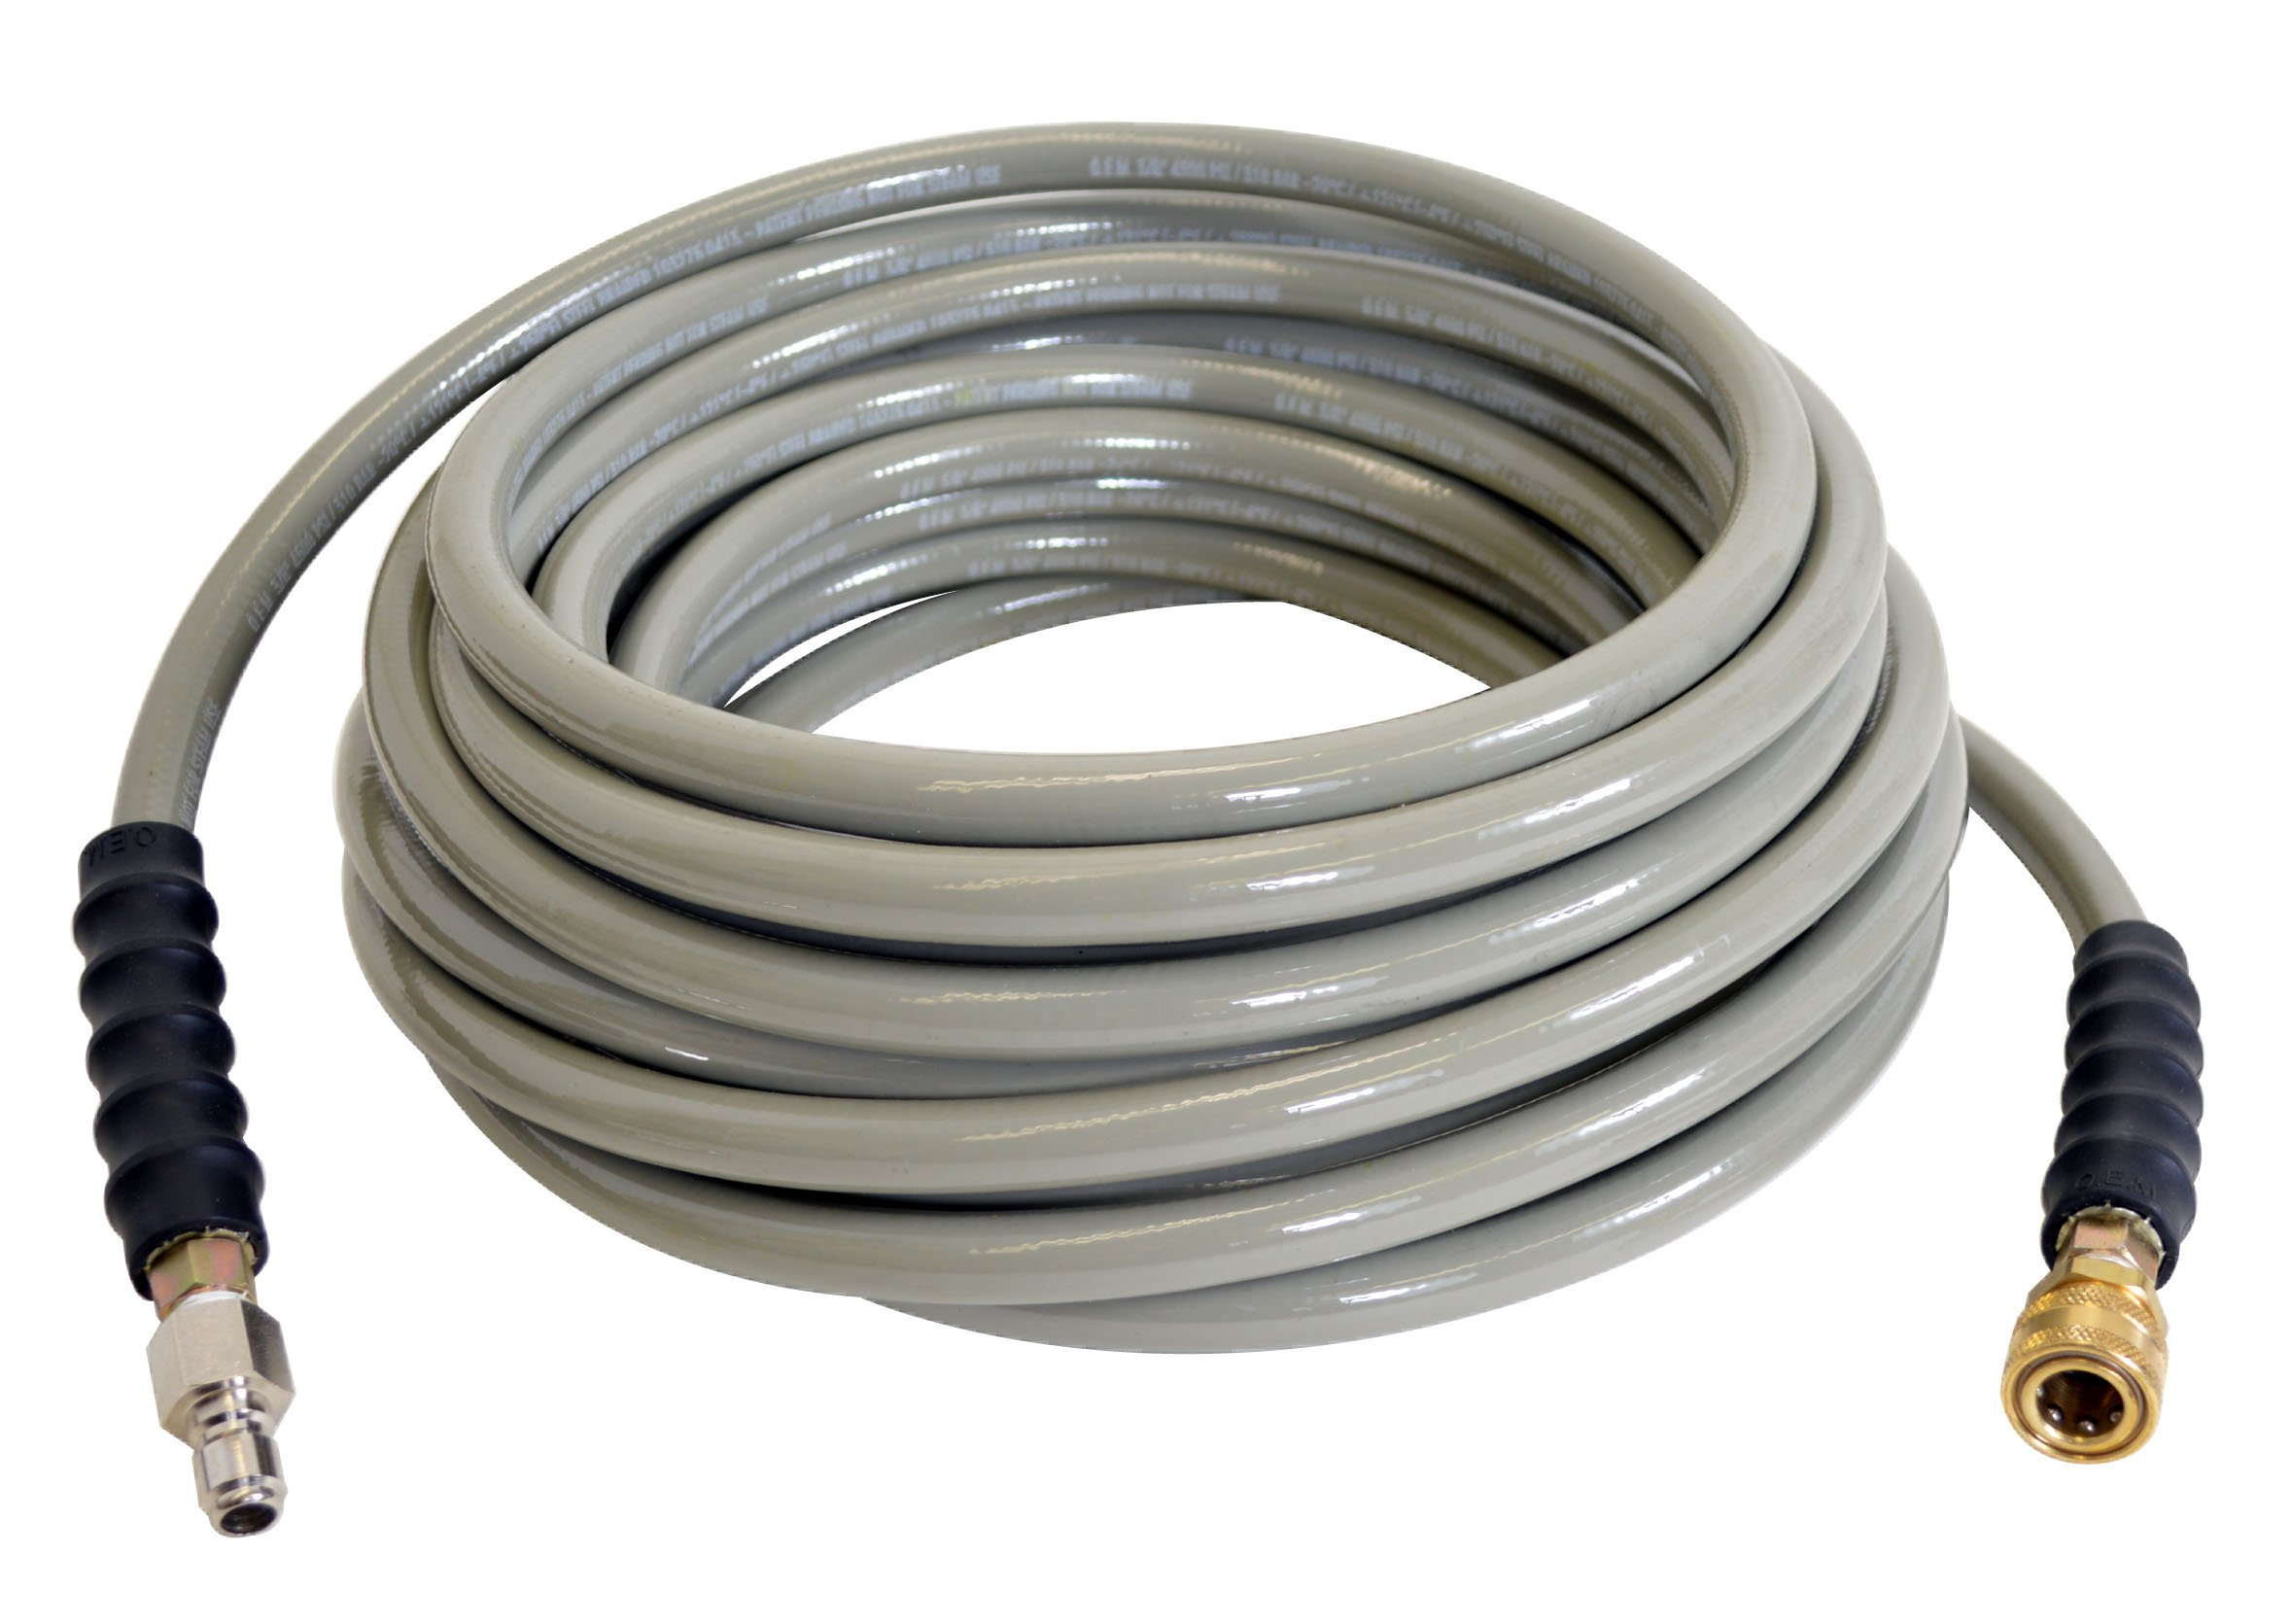 SIMPSON Cleaning Armor 41114 3/8'' x 50' 4500 PSI Hot and Cold Water Replacement/ Extension Hose